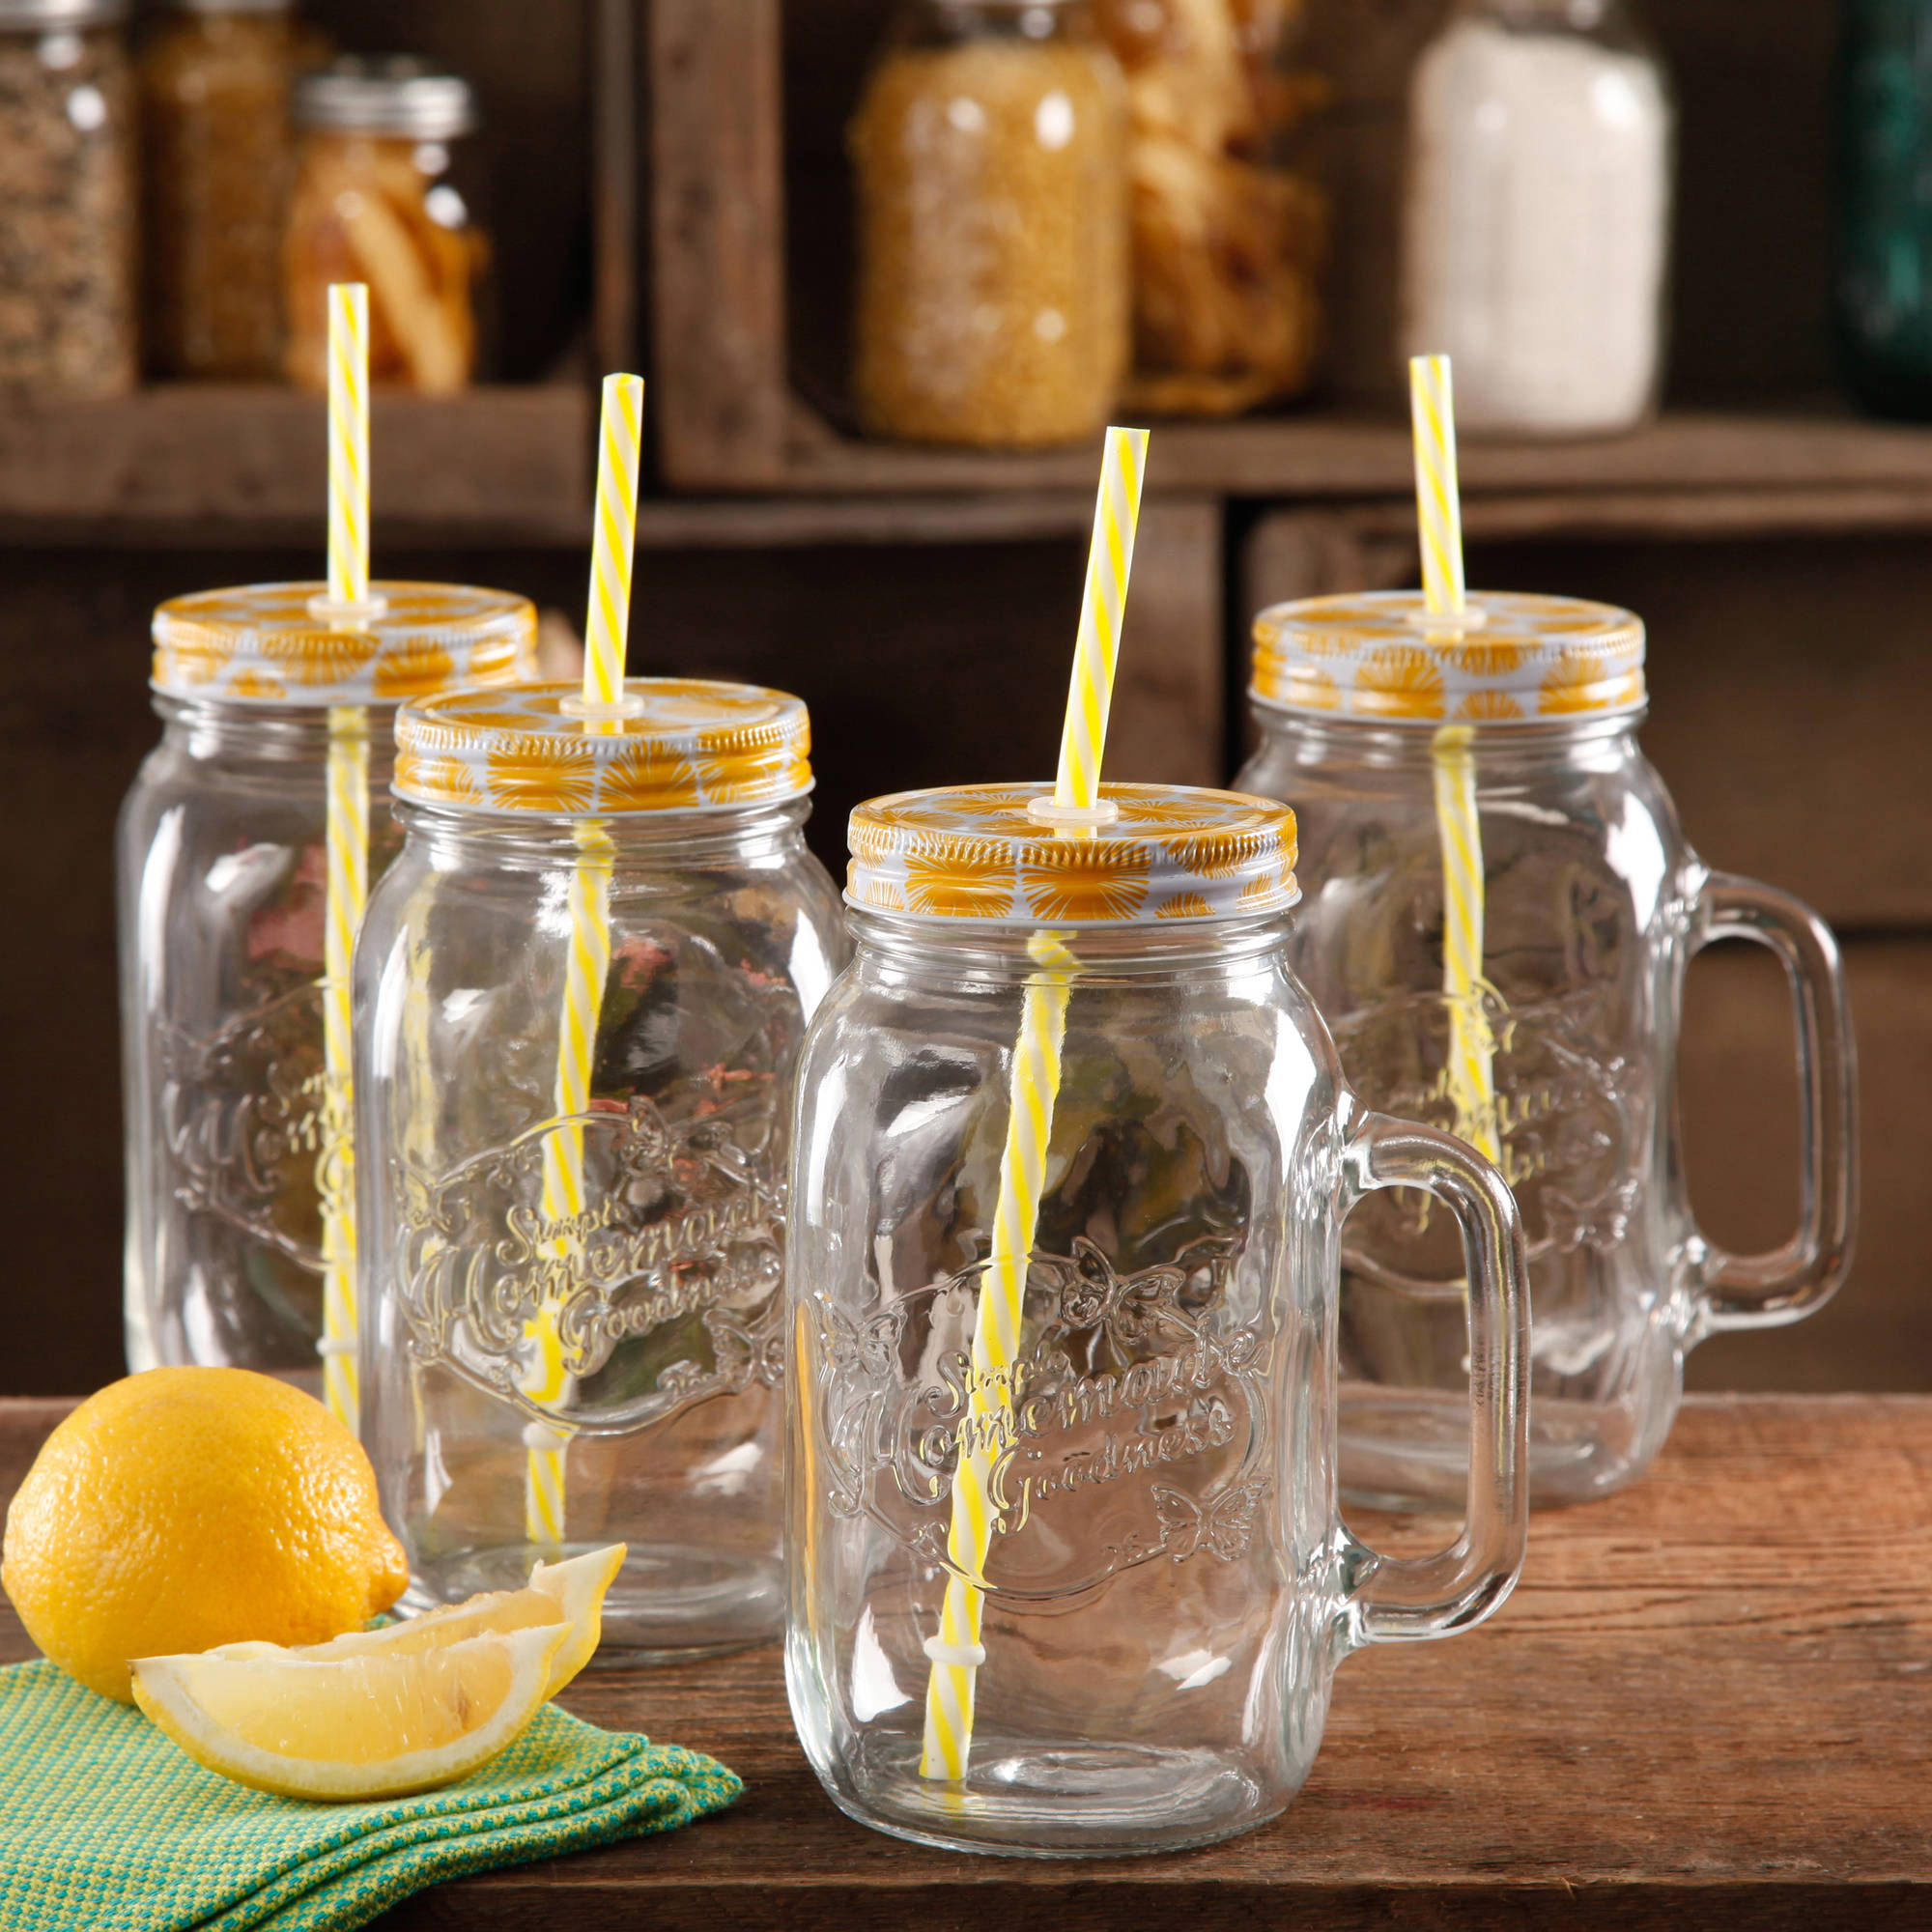 The Pioneer Woman Simple Homemade Goodness 32-Ounce Mason Jars with Handle, Lid and Straw, Set of 4